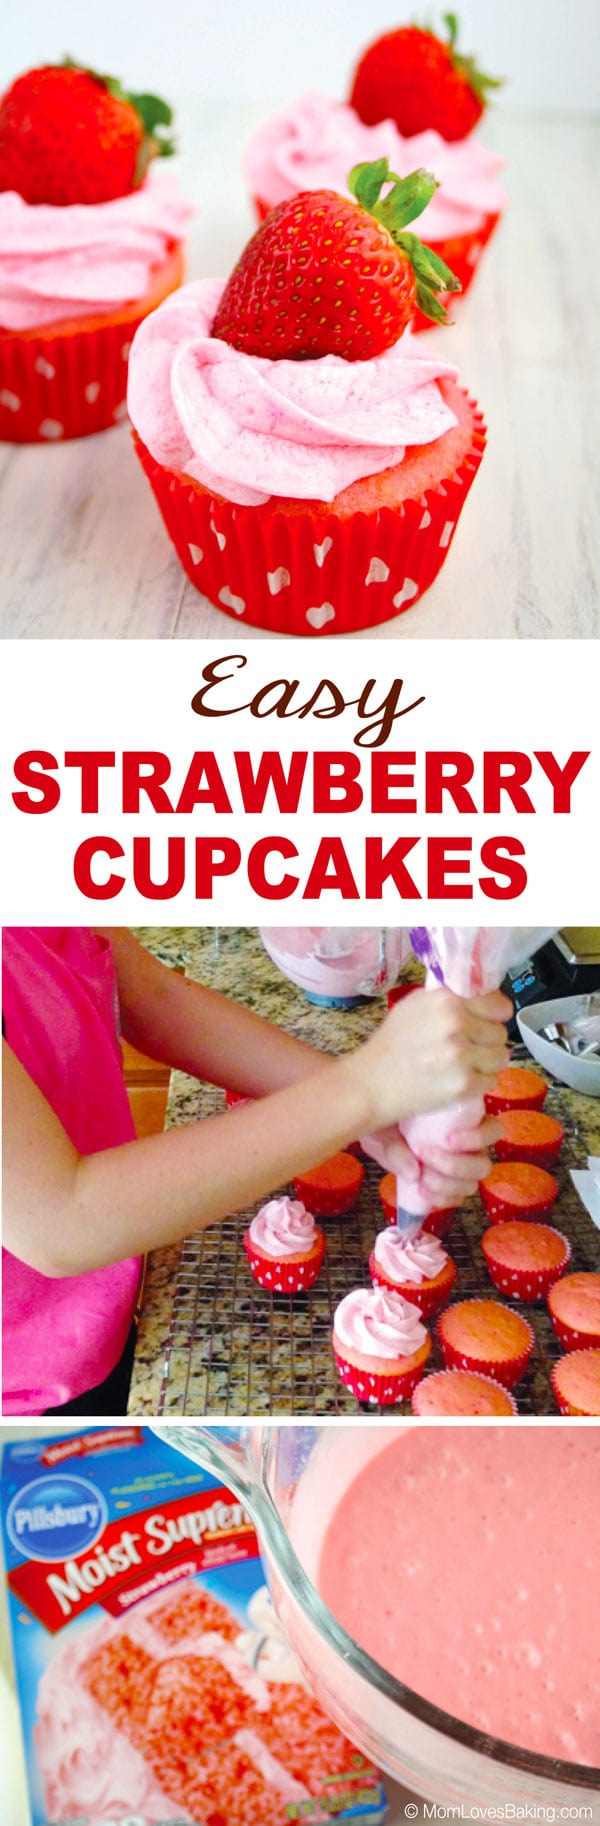 Easy Strawberry Buttercream Cupcakes